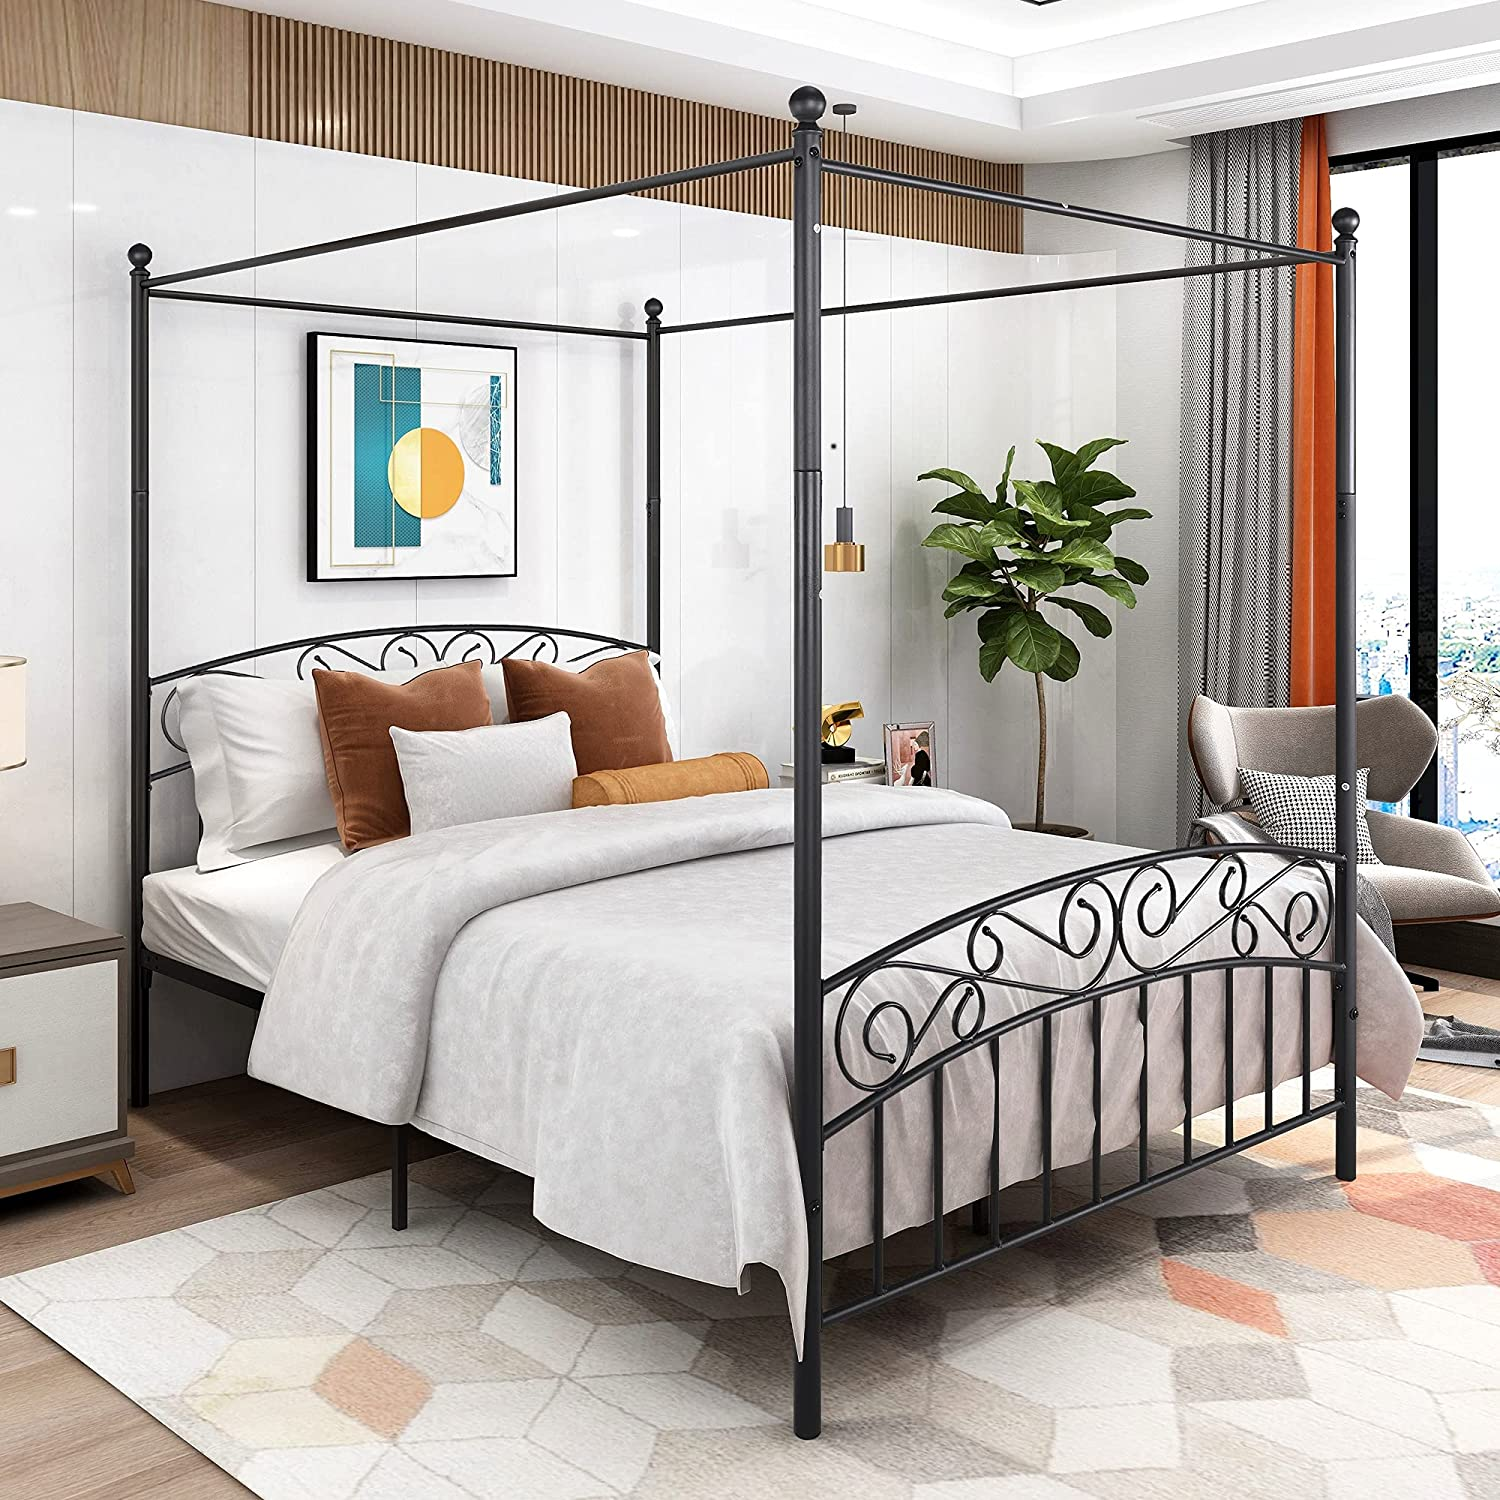 Canopy Bed Sale SALE% OFF Frame Queen Size Headboard Footboar with Metal Deluxe Sto